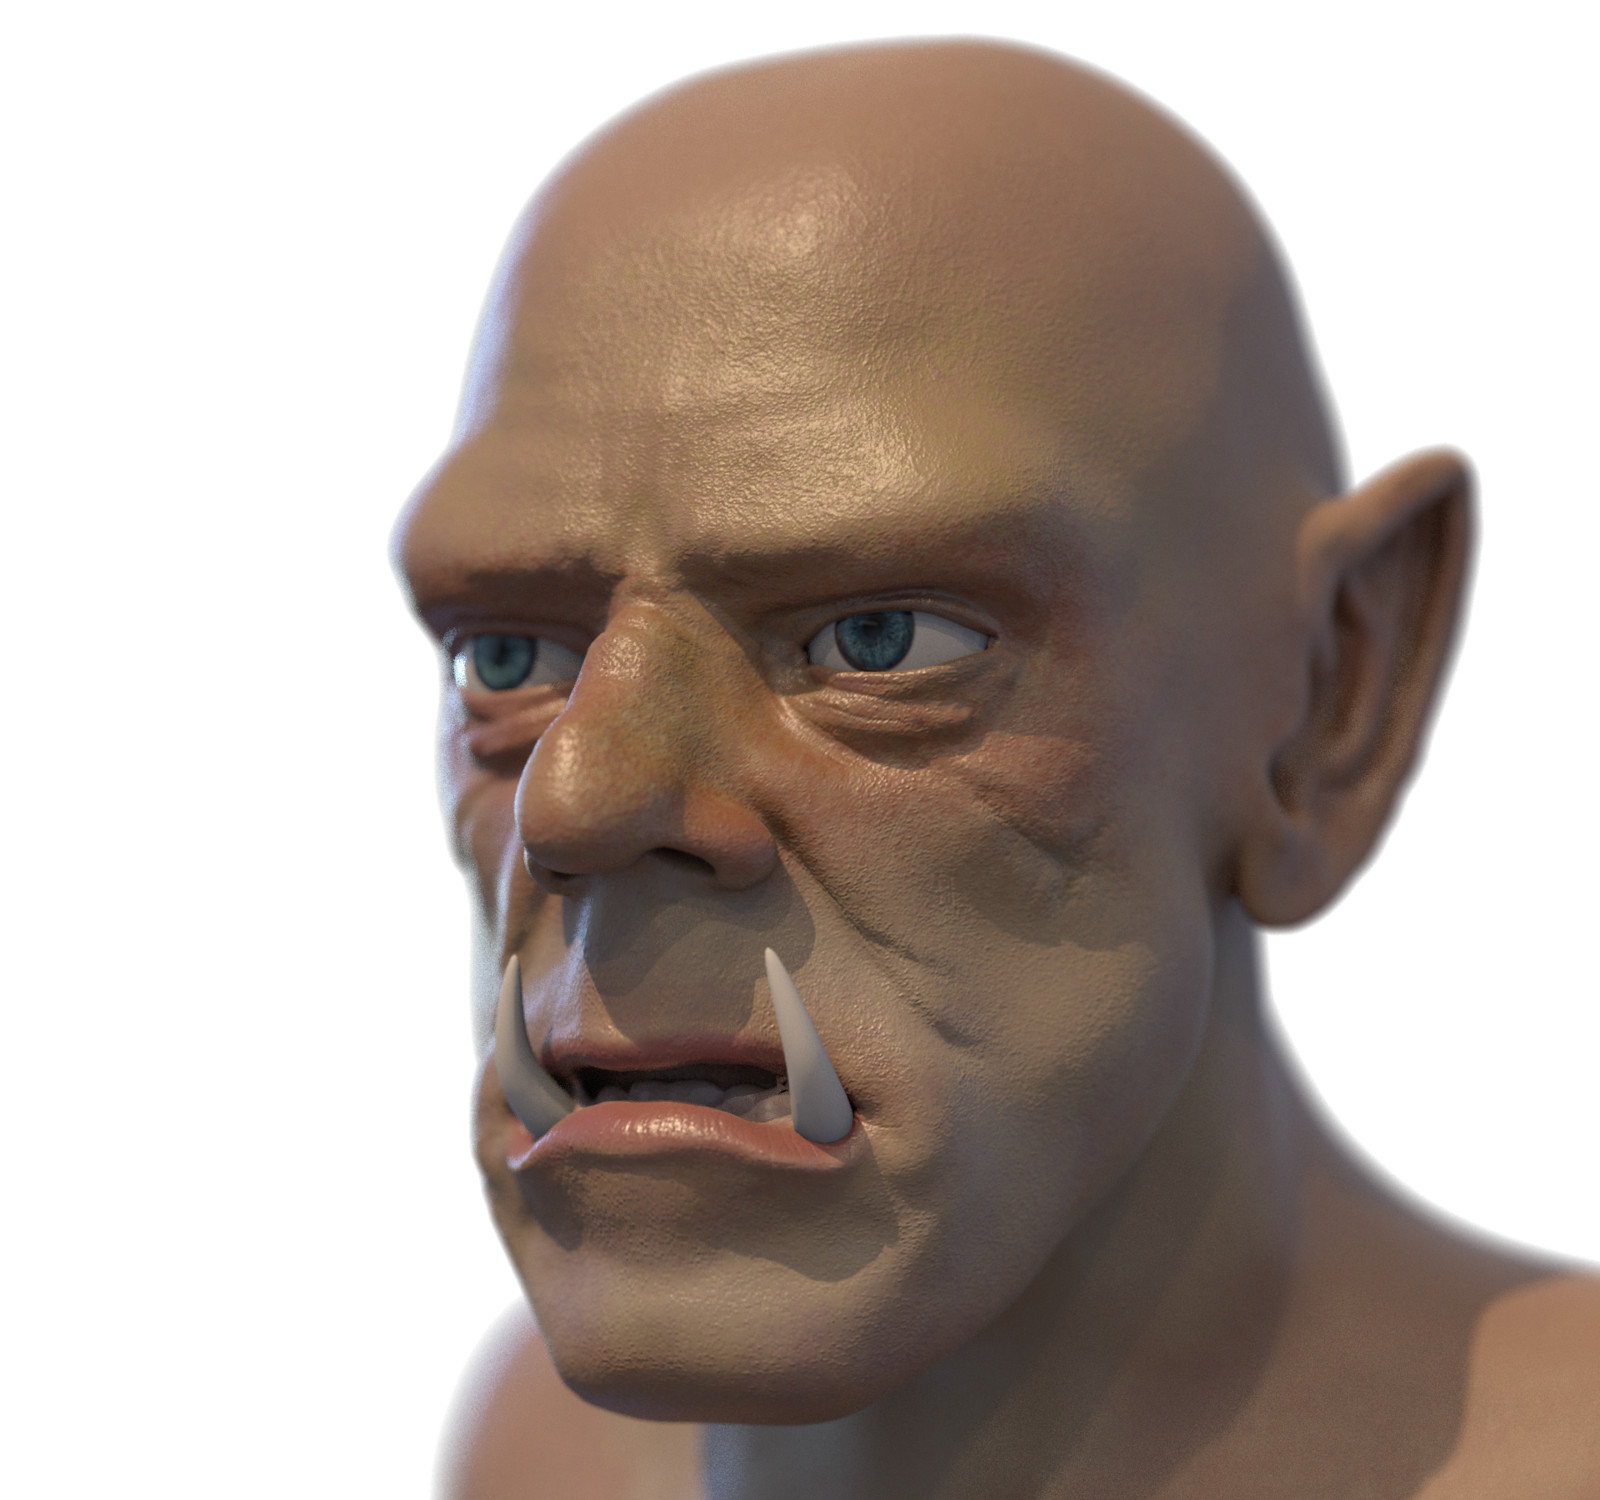 Orc update from blender render. Those eyes look way too kind, and need to add hair and armour and some more attitude.